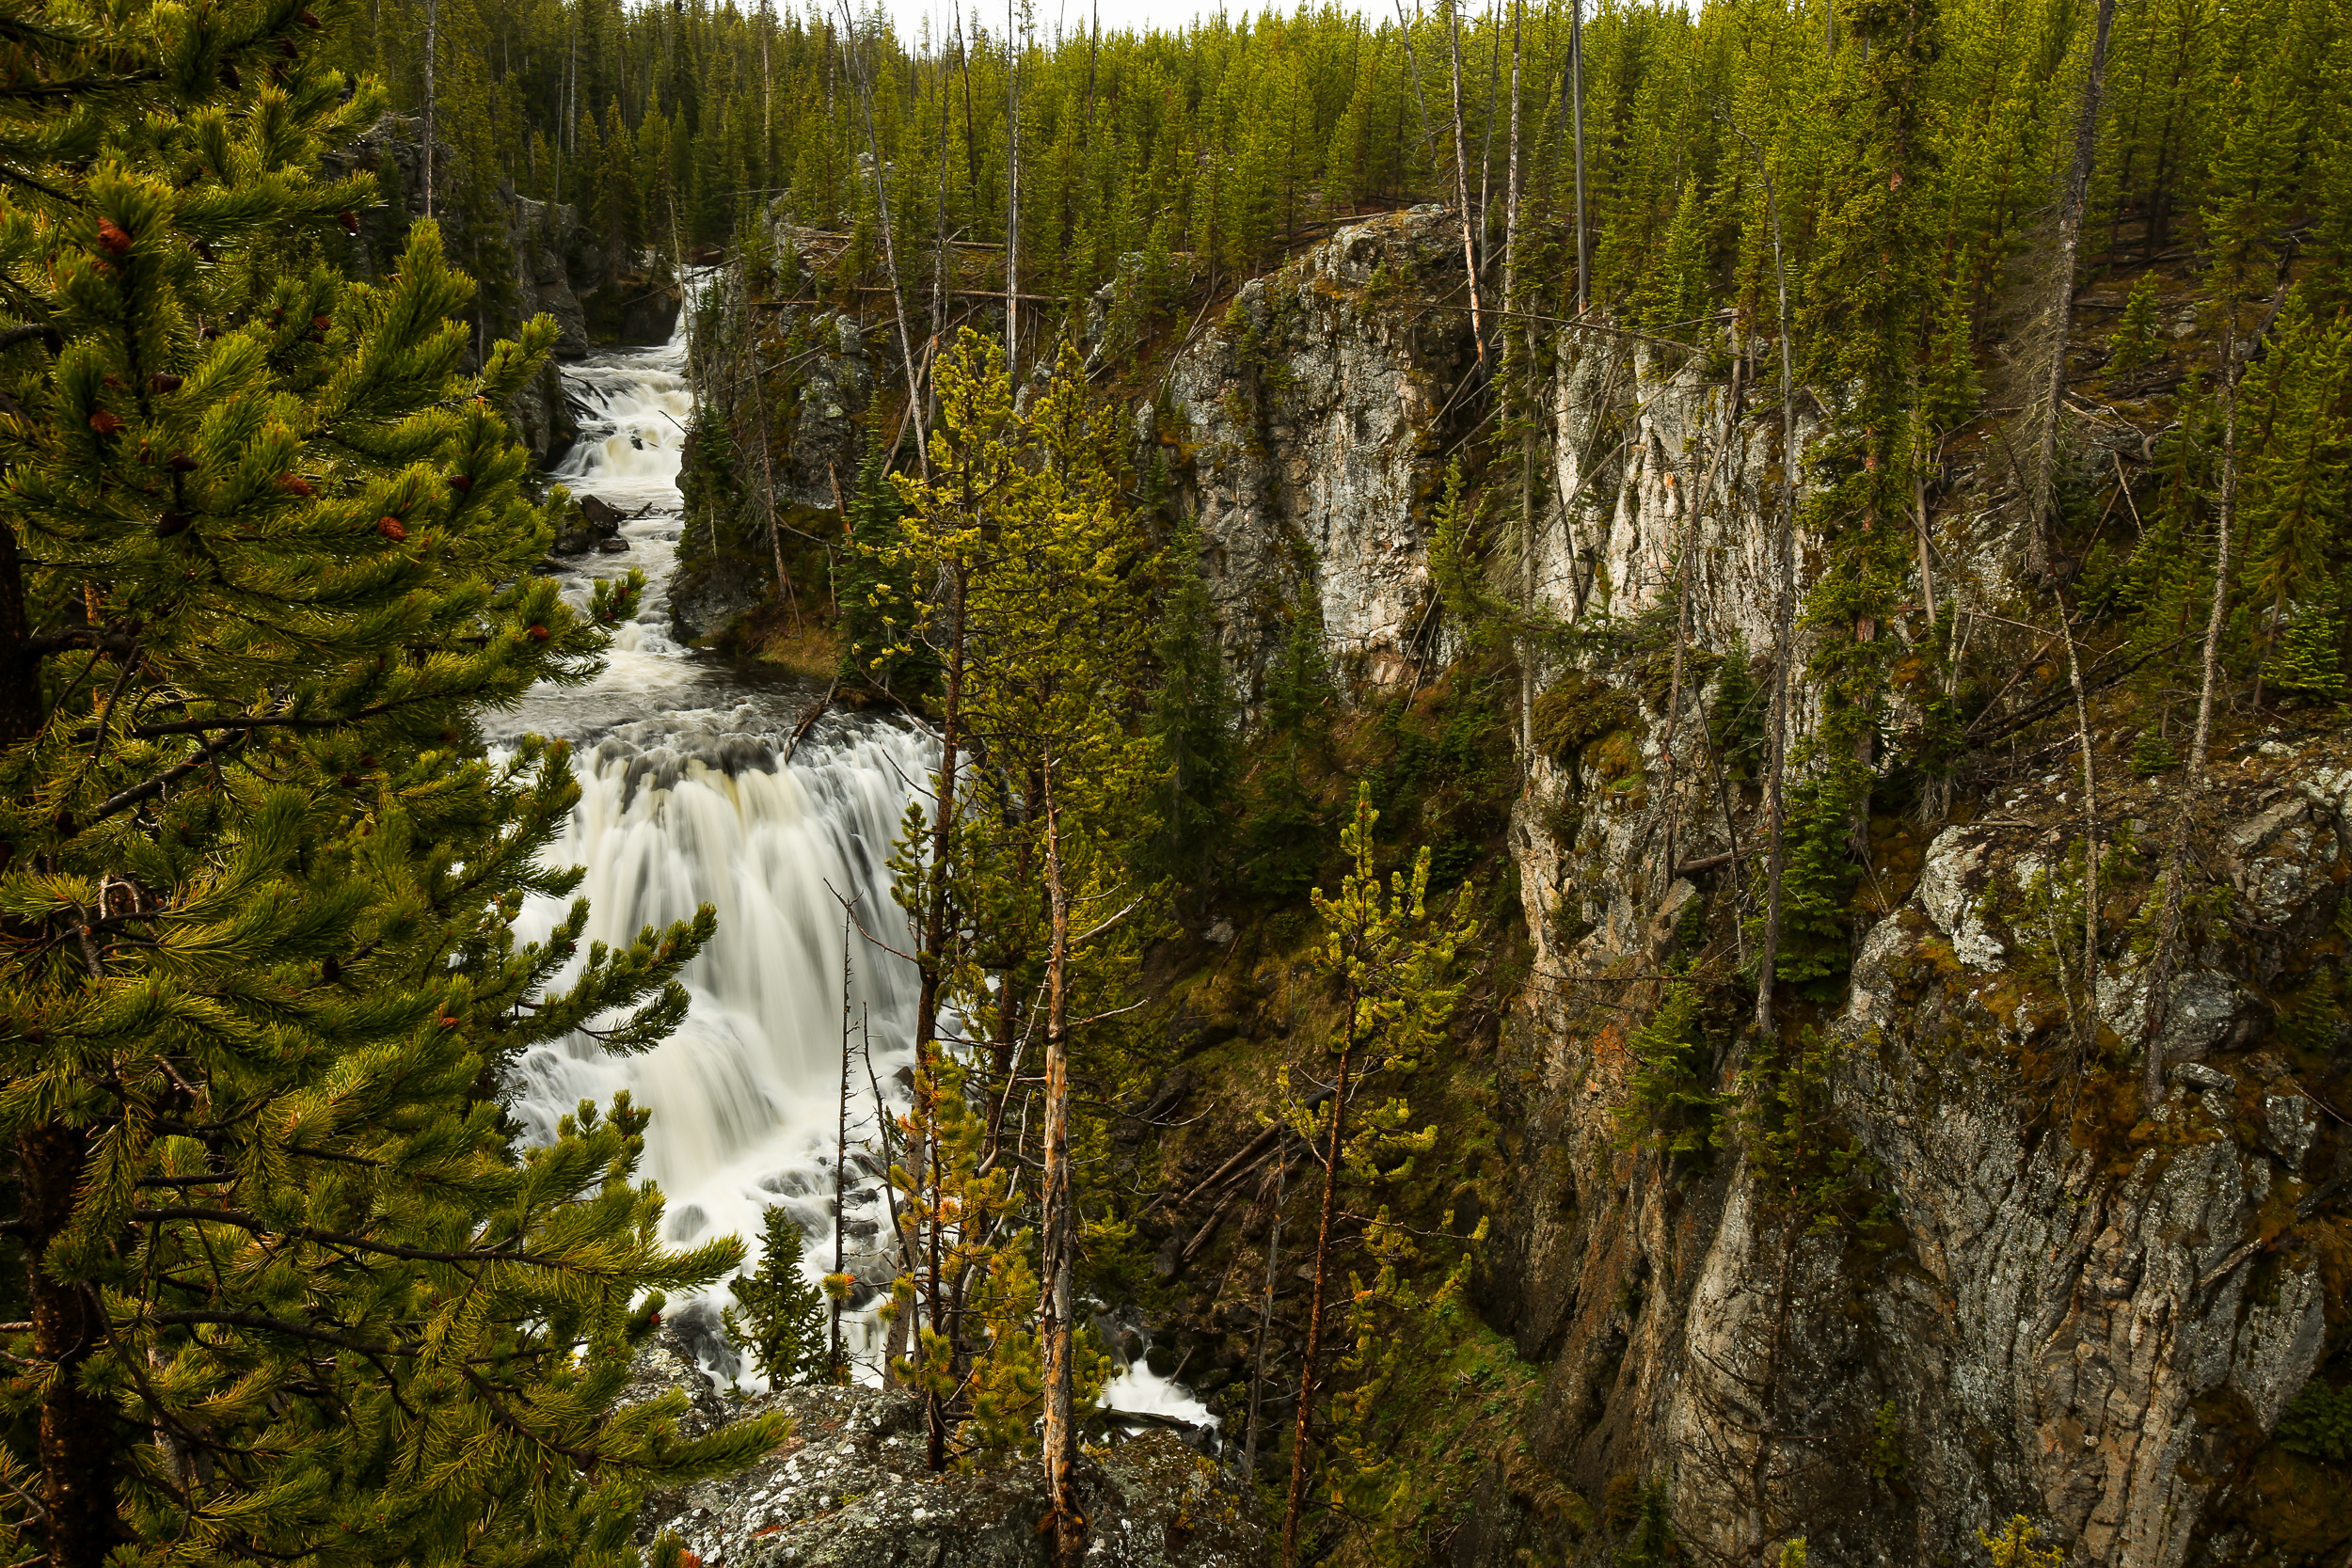 Kepler Cascades, Yellowstone National Park.  Shot with a wide angle lens on my Canon 5D, ISO 100, f/16, long shutter speed of 0.3 seconds. I also used a circular polarizer to cut the light and allow for a longer shutter speed. This was taken at about 6:30am, on a cloudy but dry morning, with the sun just peeping through the clouds to the left.